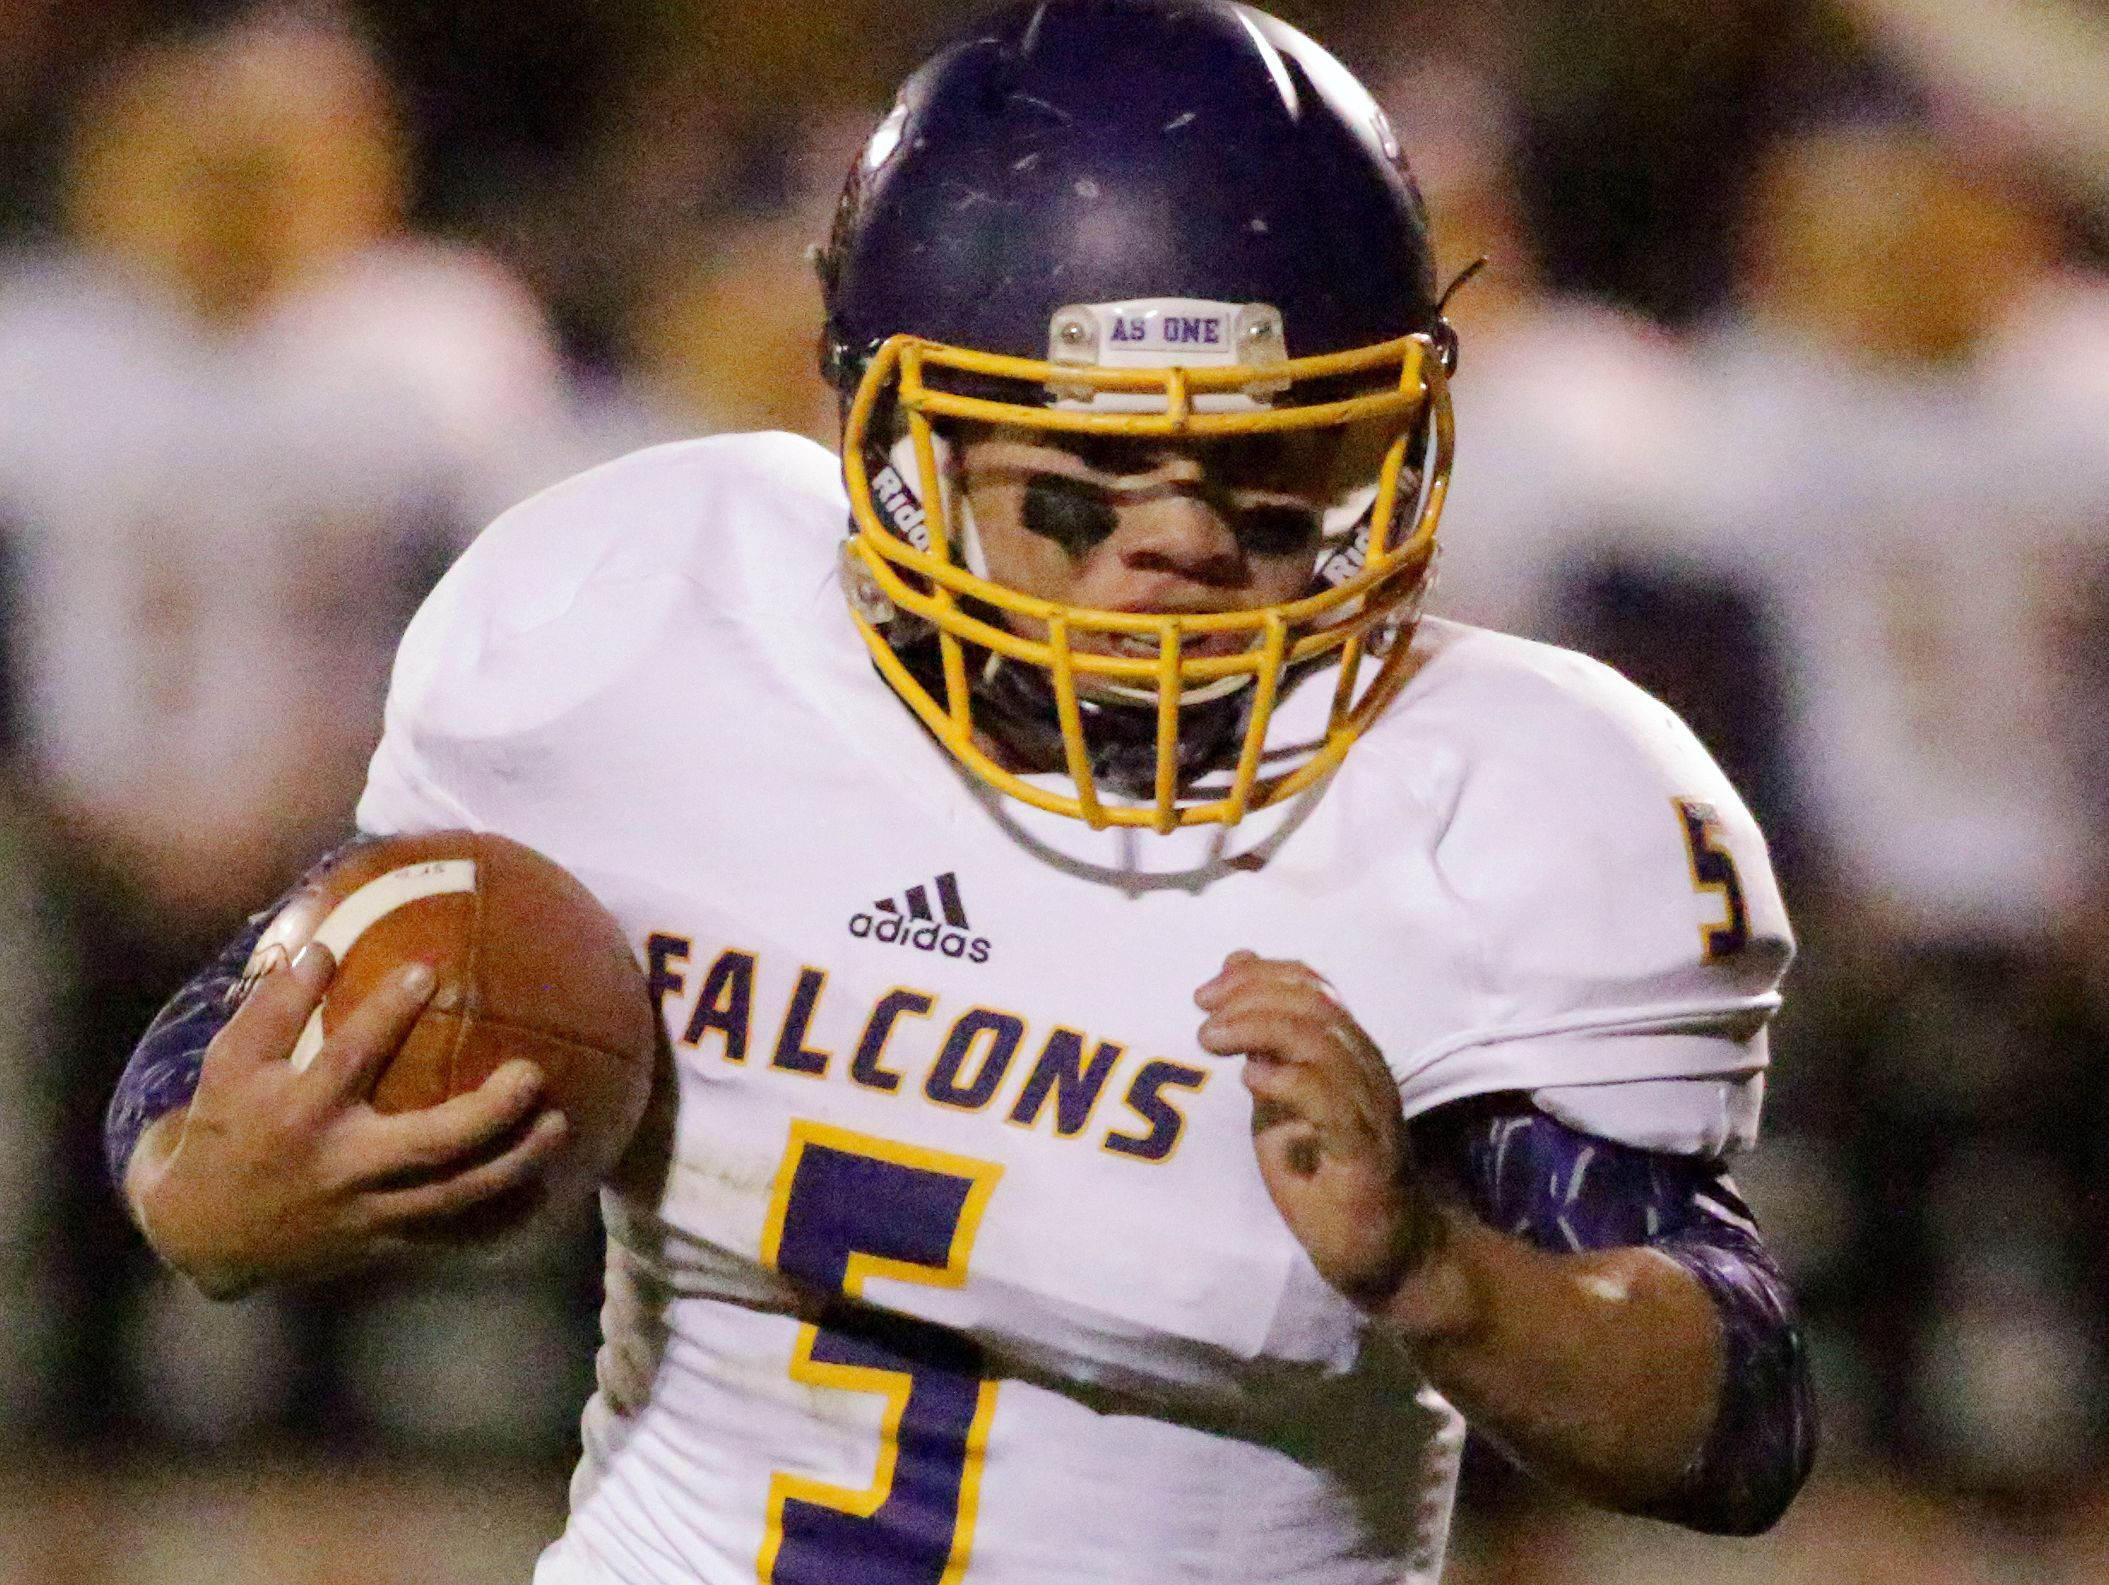 Sheboygan Falls senior Sean Mattek was named the Offensive Player of the Year in the Eastern Wisconsin Conference.